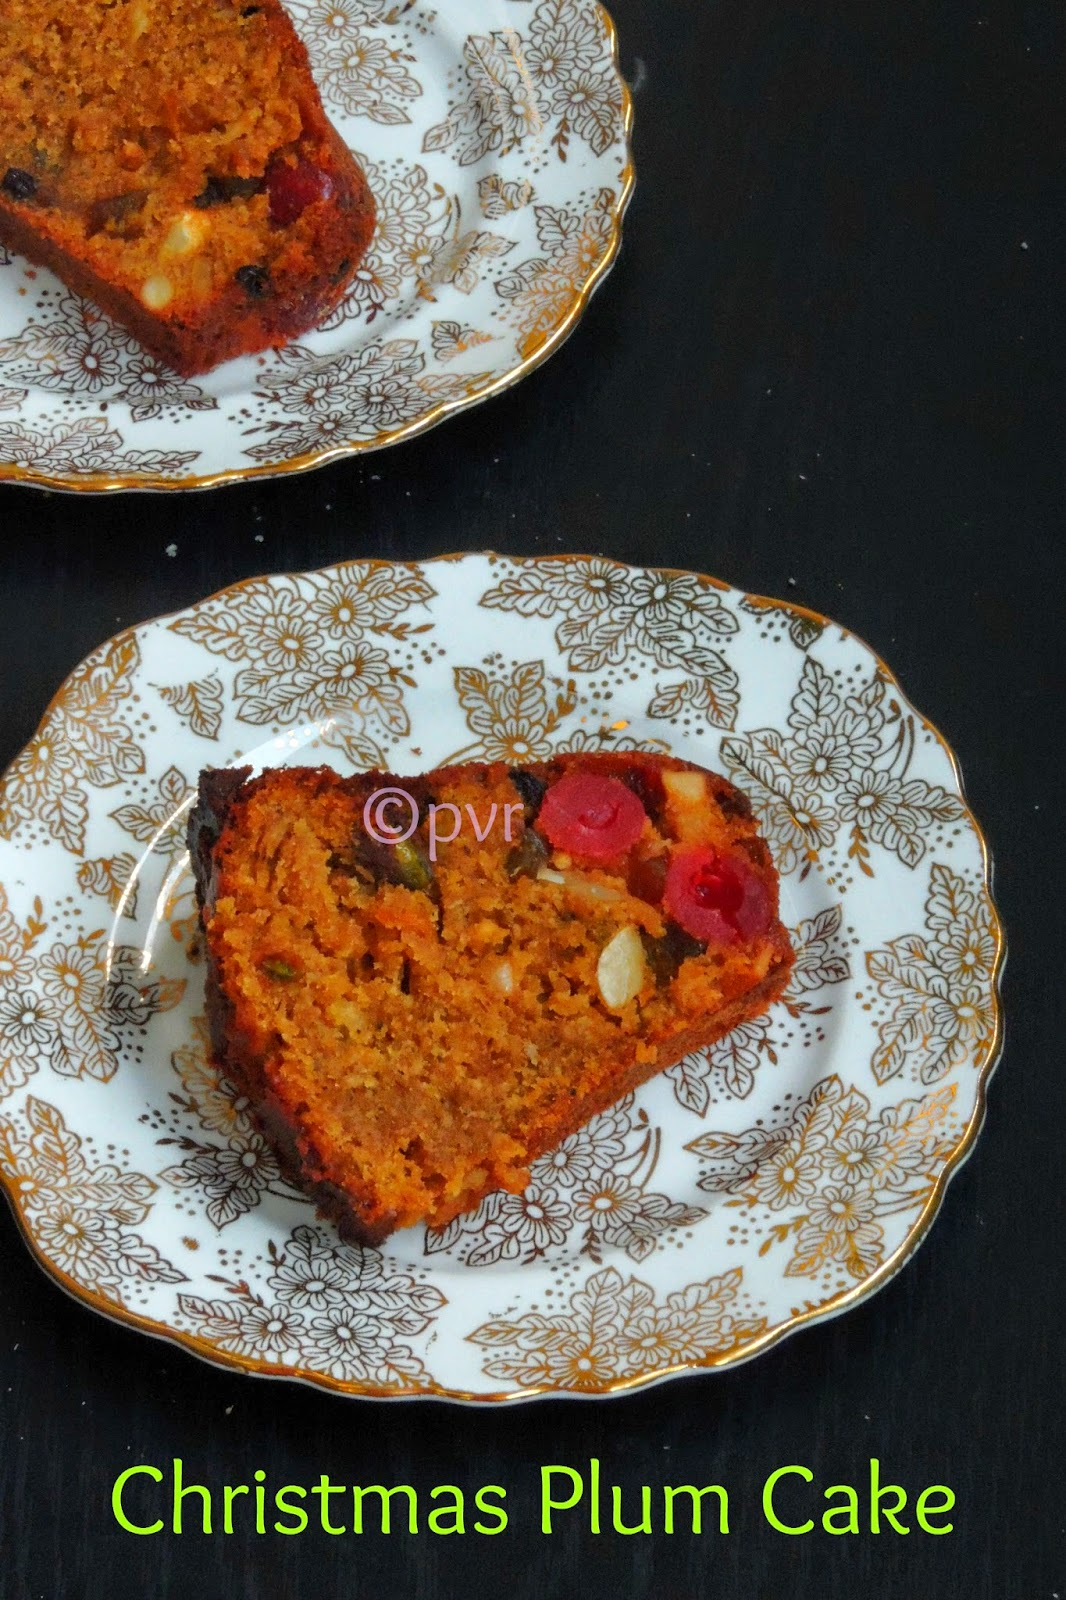 Pondicherry plum cake, Christmas plum cake